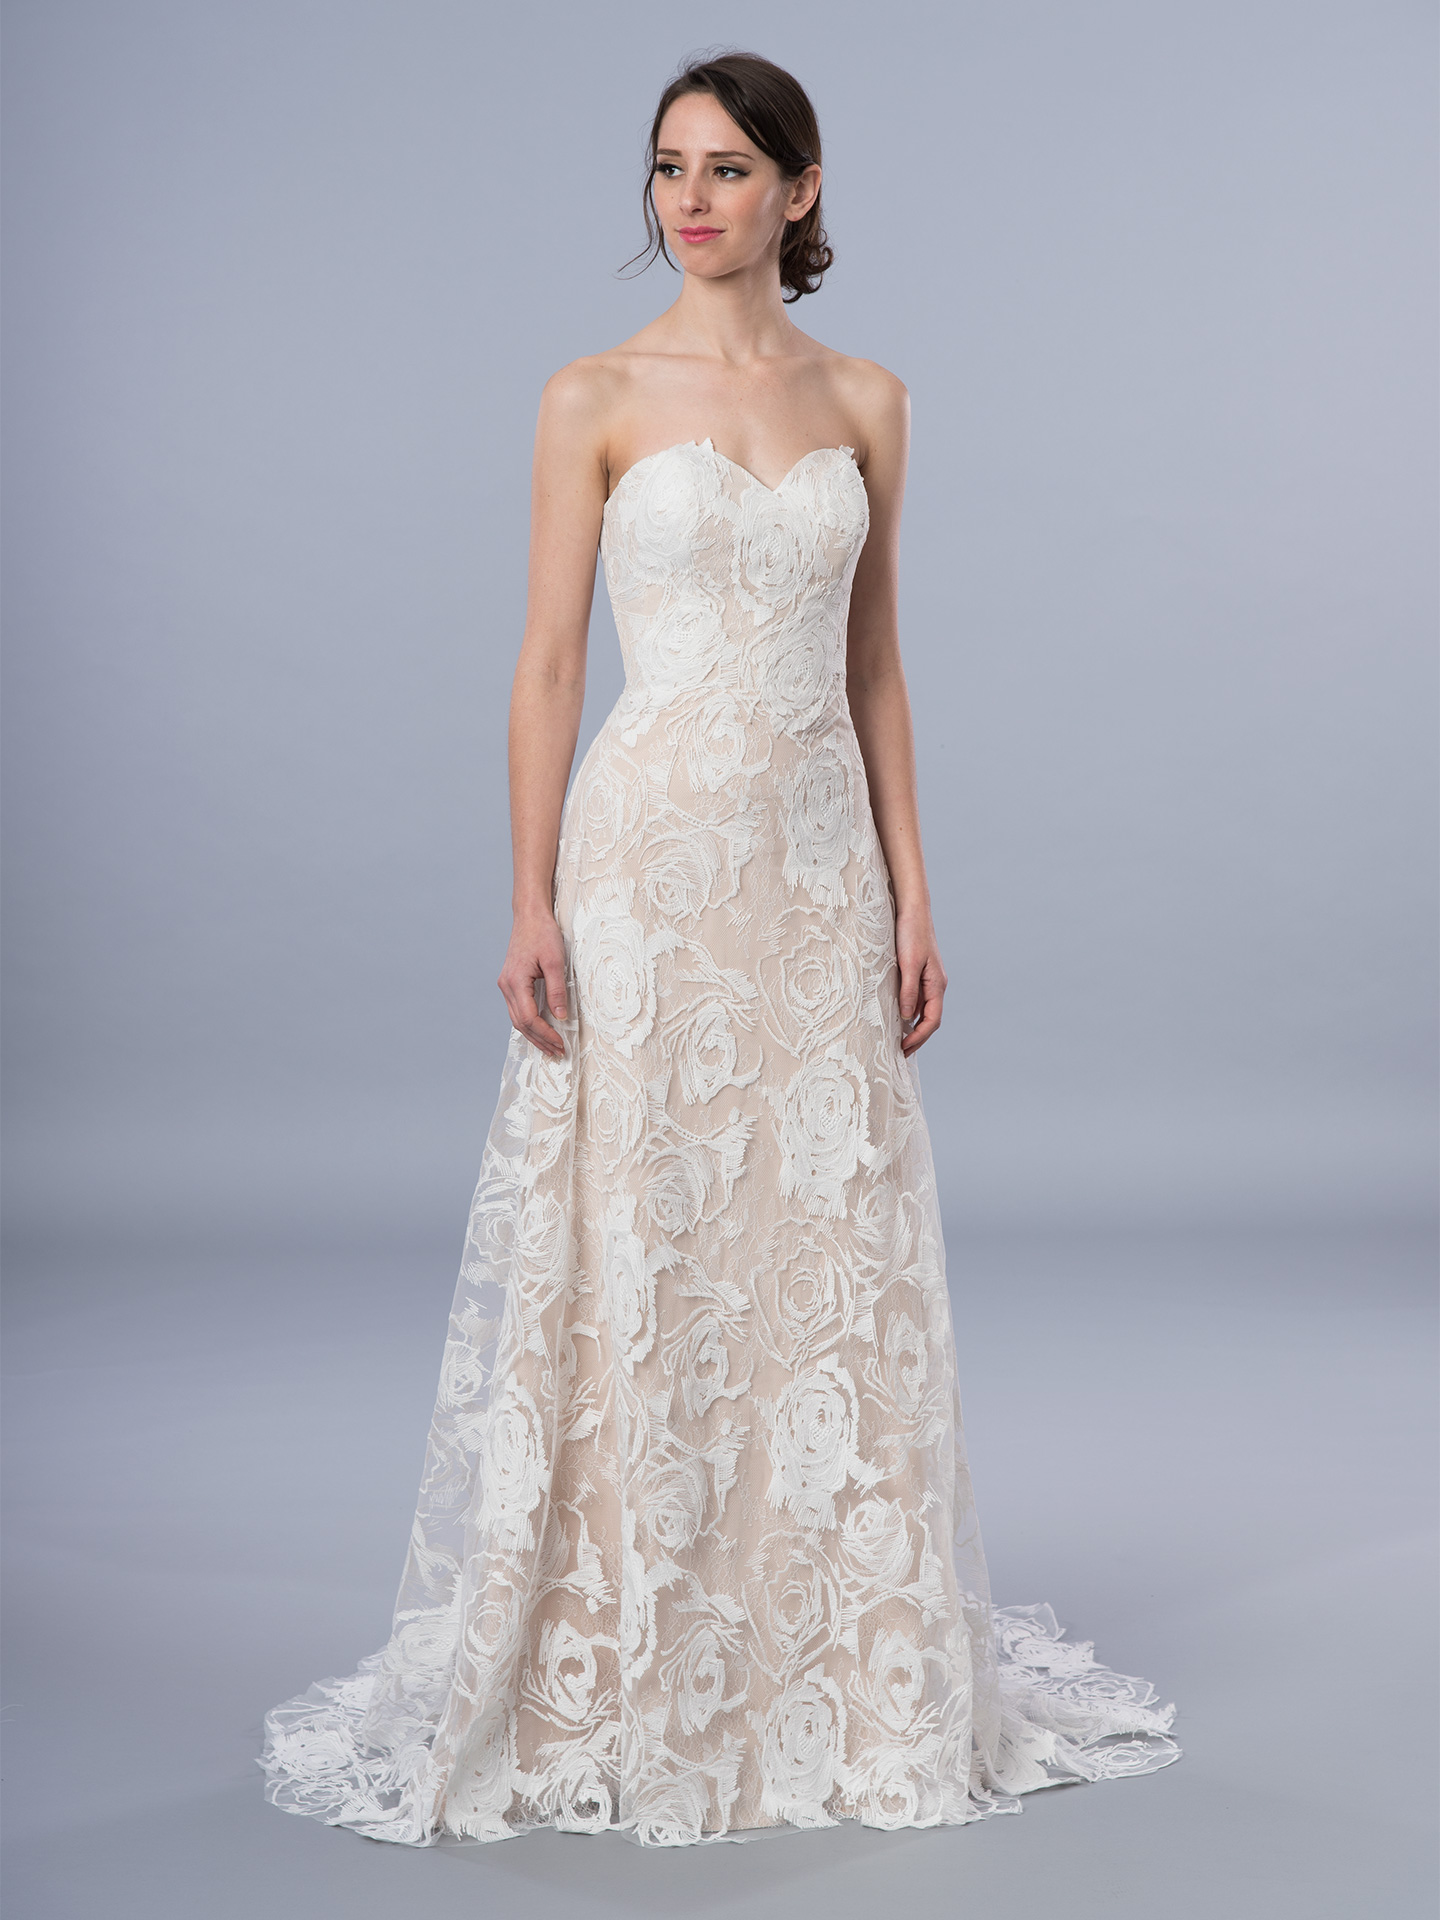 Boho lace wedding dress 4071